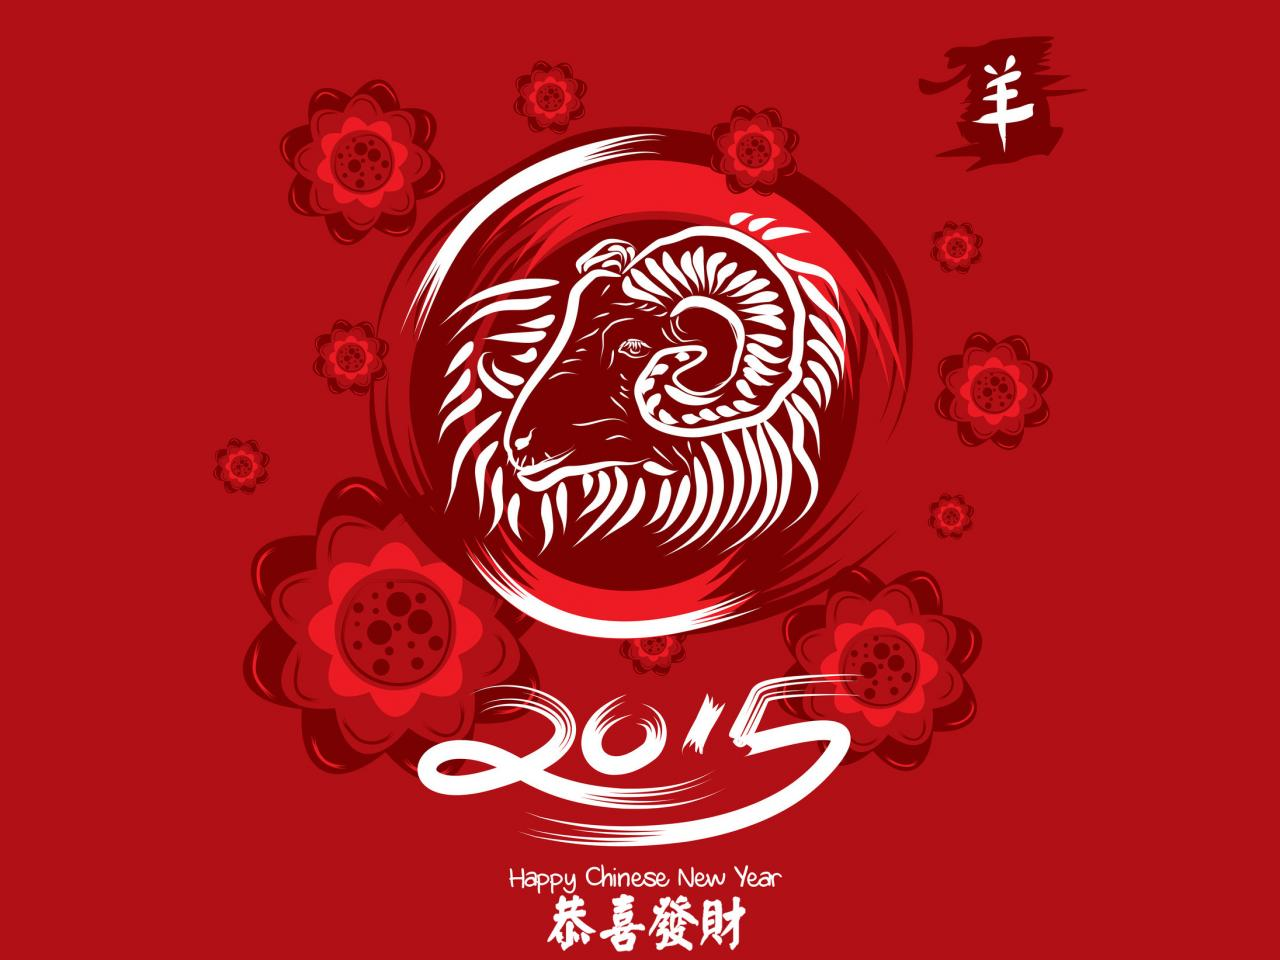 2015 wallpaper goat year chinese new year hd wallpapers for free